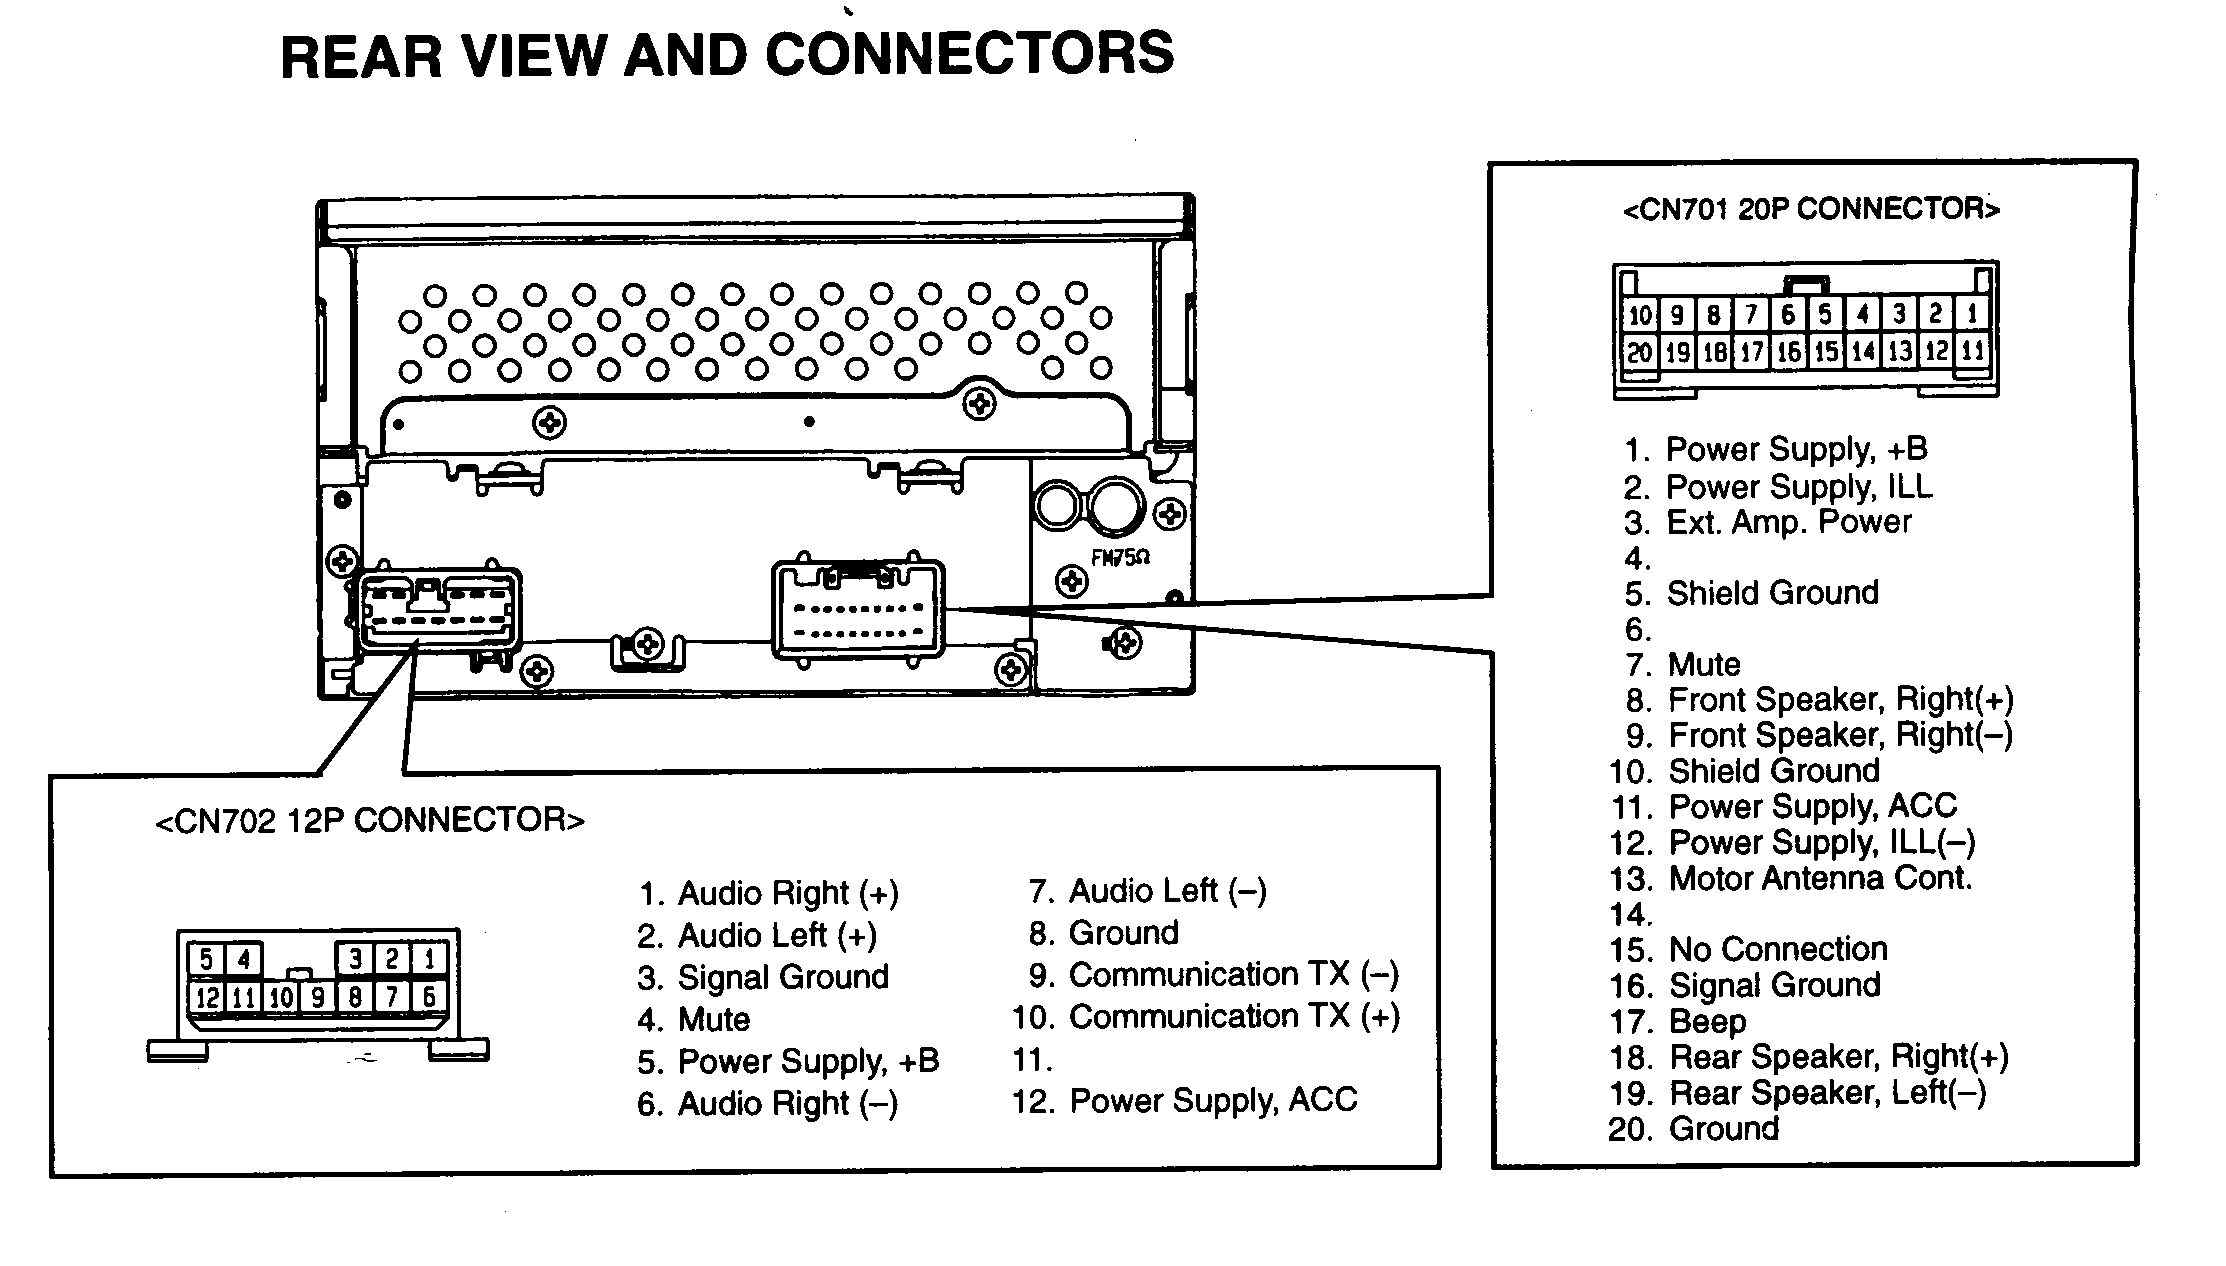 WireHarnessToyota03210201 color wiring diagram car stereo sony cdx gt55uiw wiring diagram mitsubishi car radio wiring diagram at bakdesigns.co